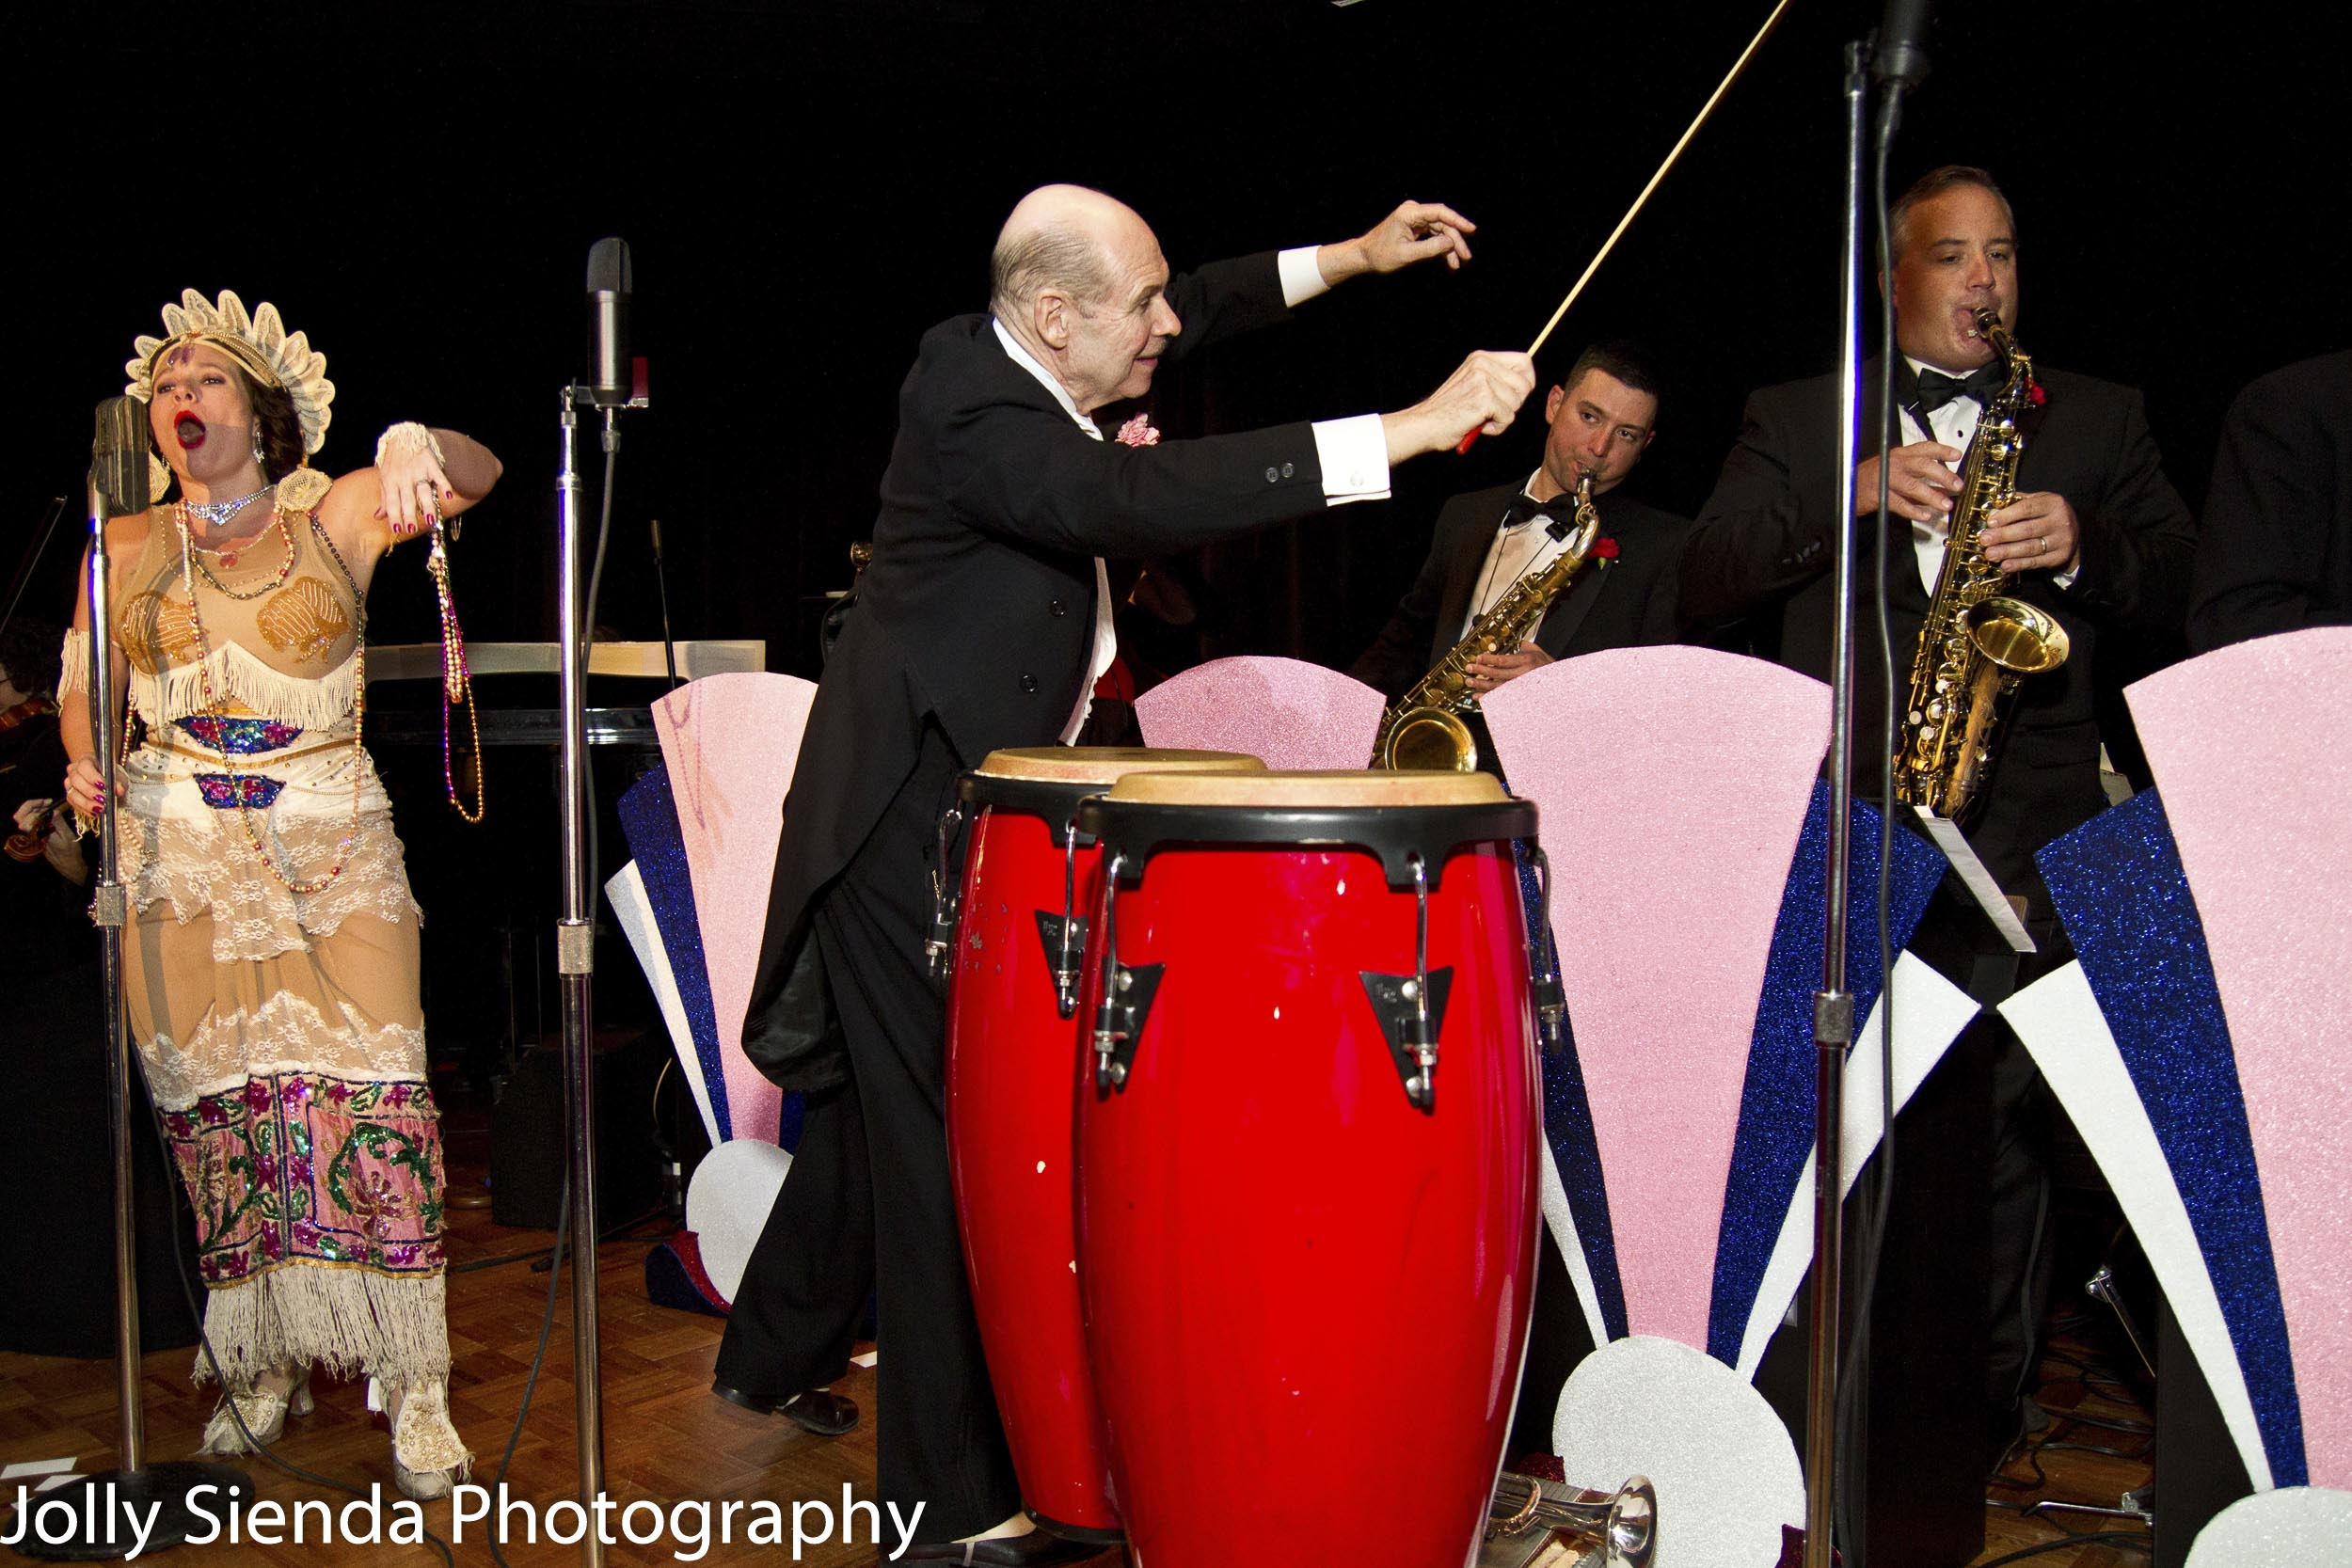 Doc Scantlin and His Imperial Palms Orchestra